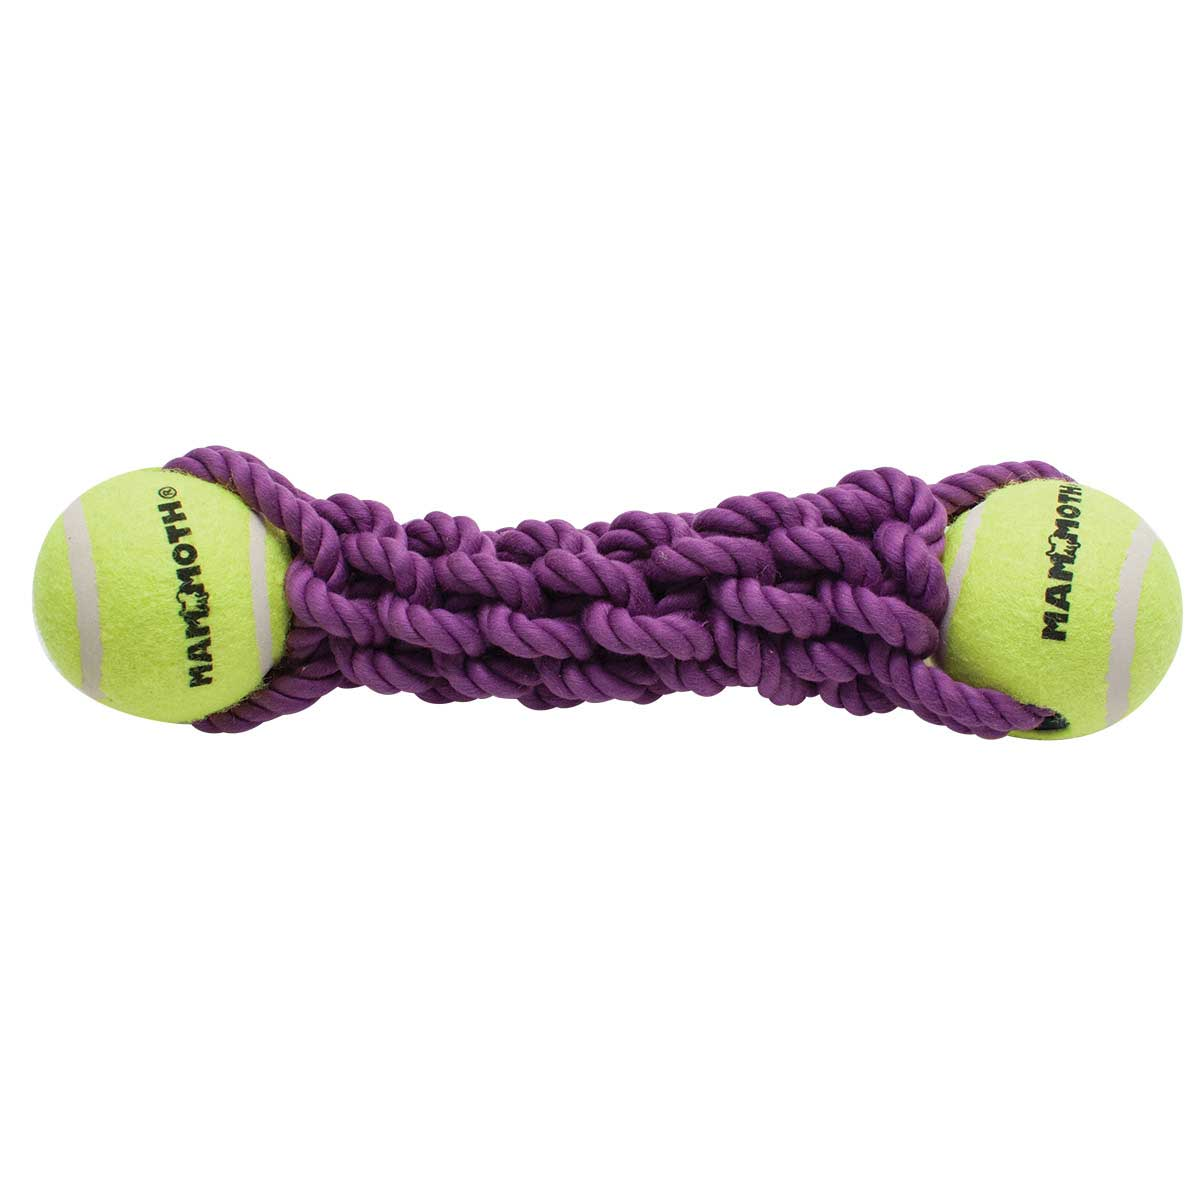 Mammoth Large 13 inch Braided Bone with 2 Tennis Balls - Fetch Toy for Dogs